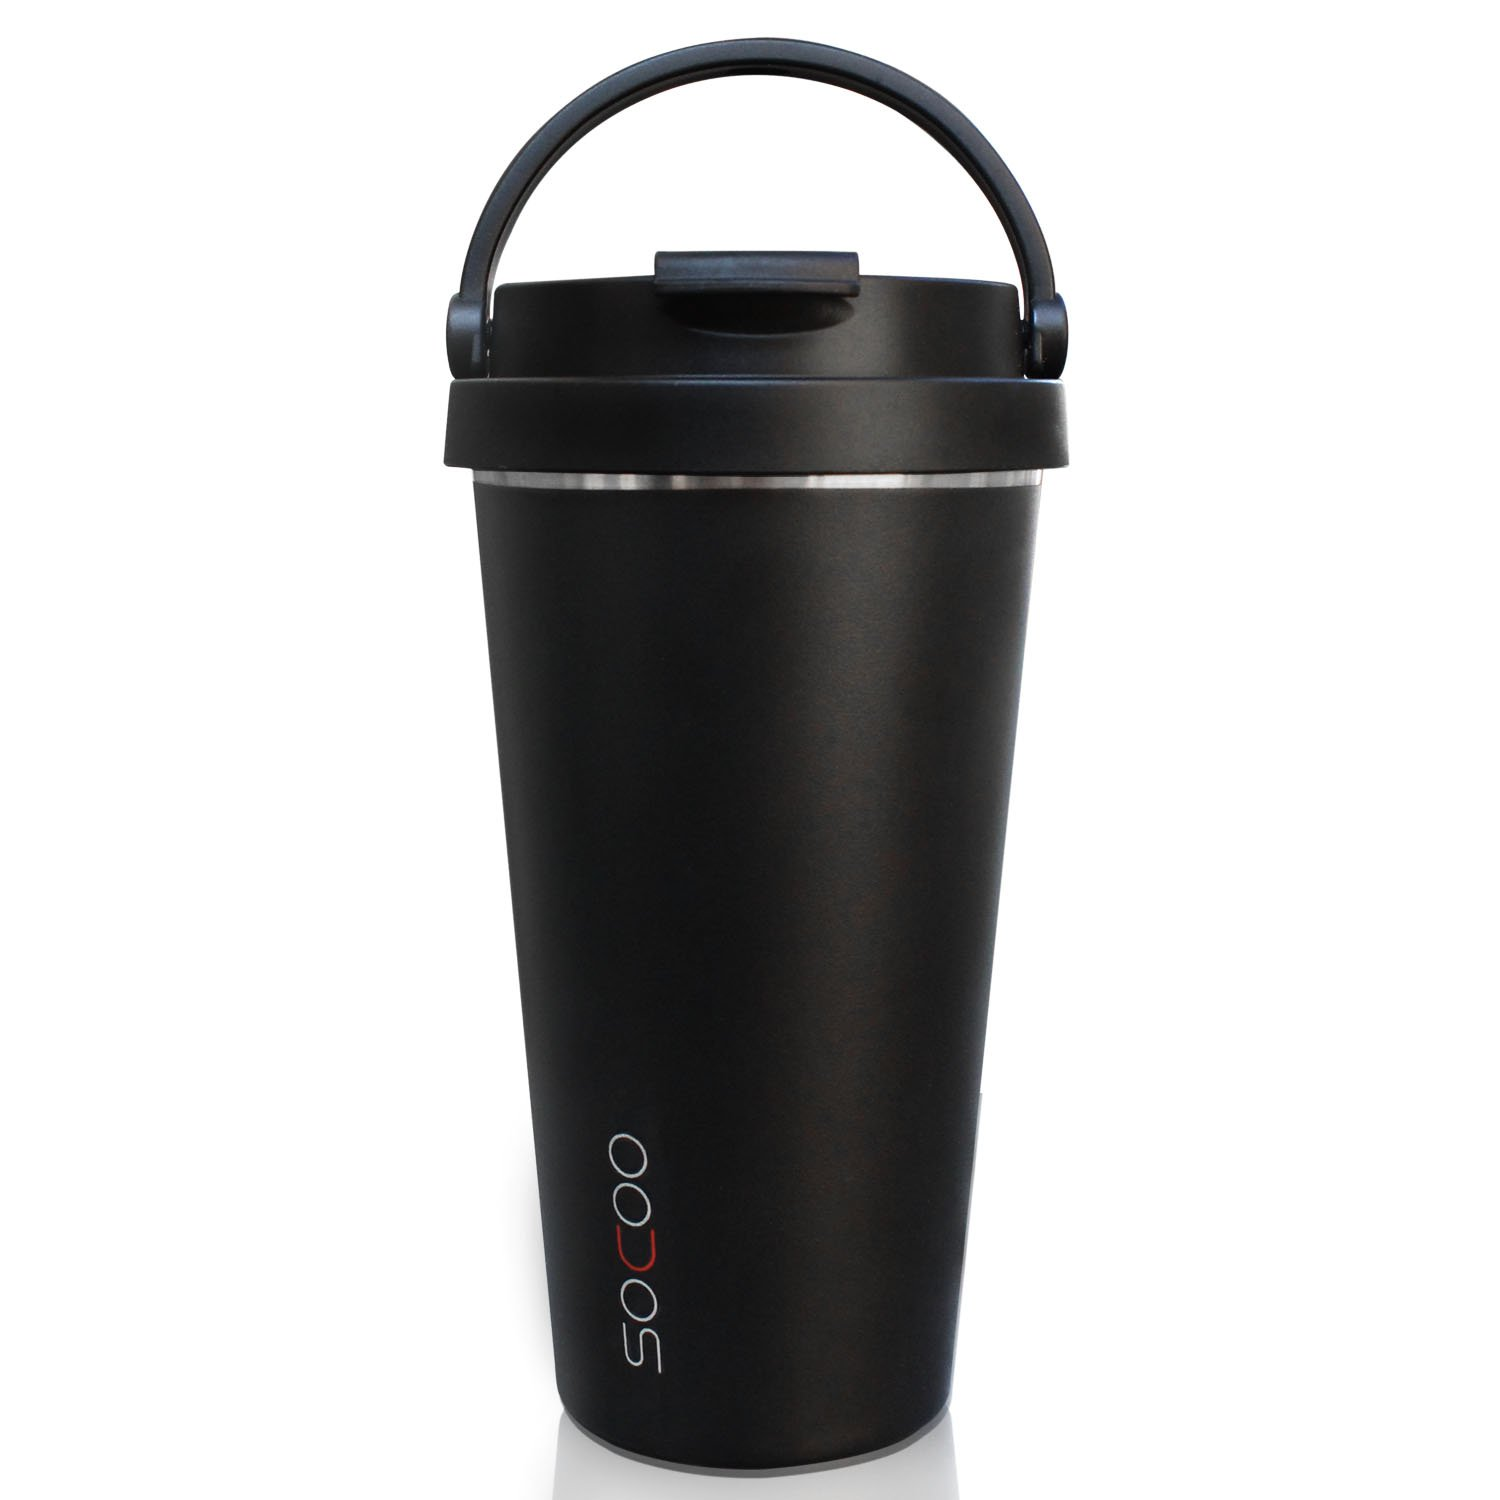 Travel Coffee Mug For Men Woman/Coffee Travel Cup With Lid SOCOO Portable Stainless Steel Insulated Double Walled Reusable BPA Free For Coffee, Tea, Chocolate 16OZ (black)